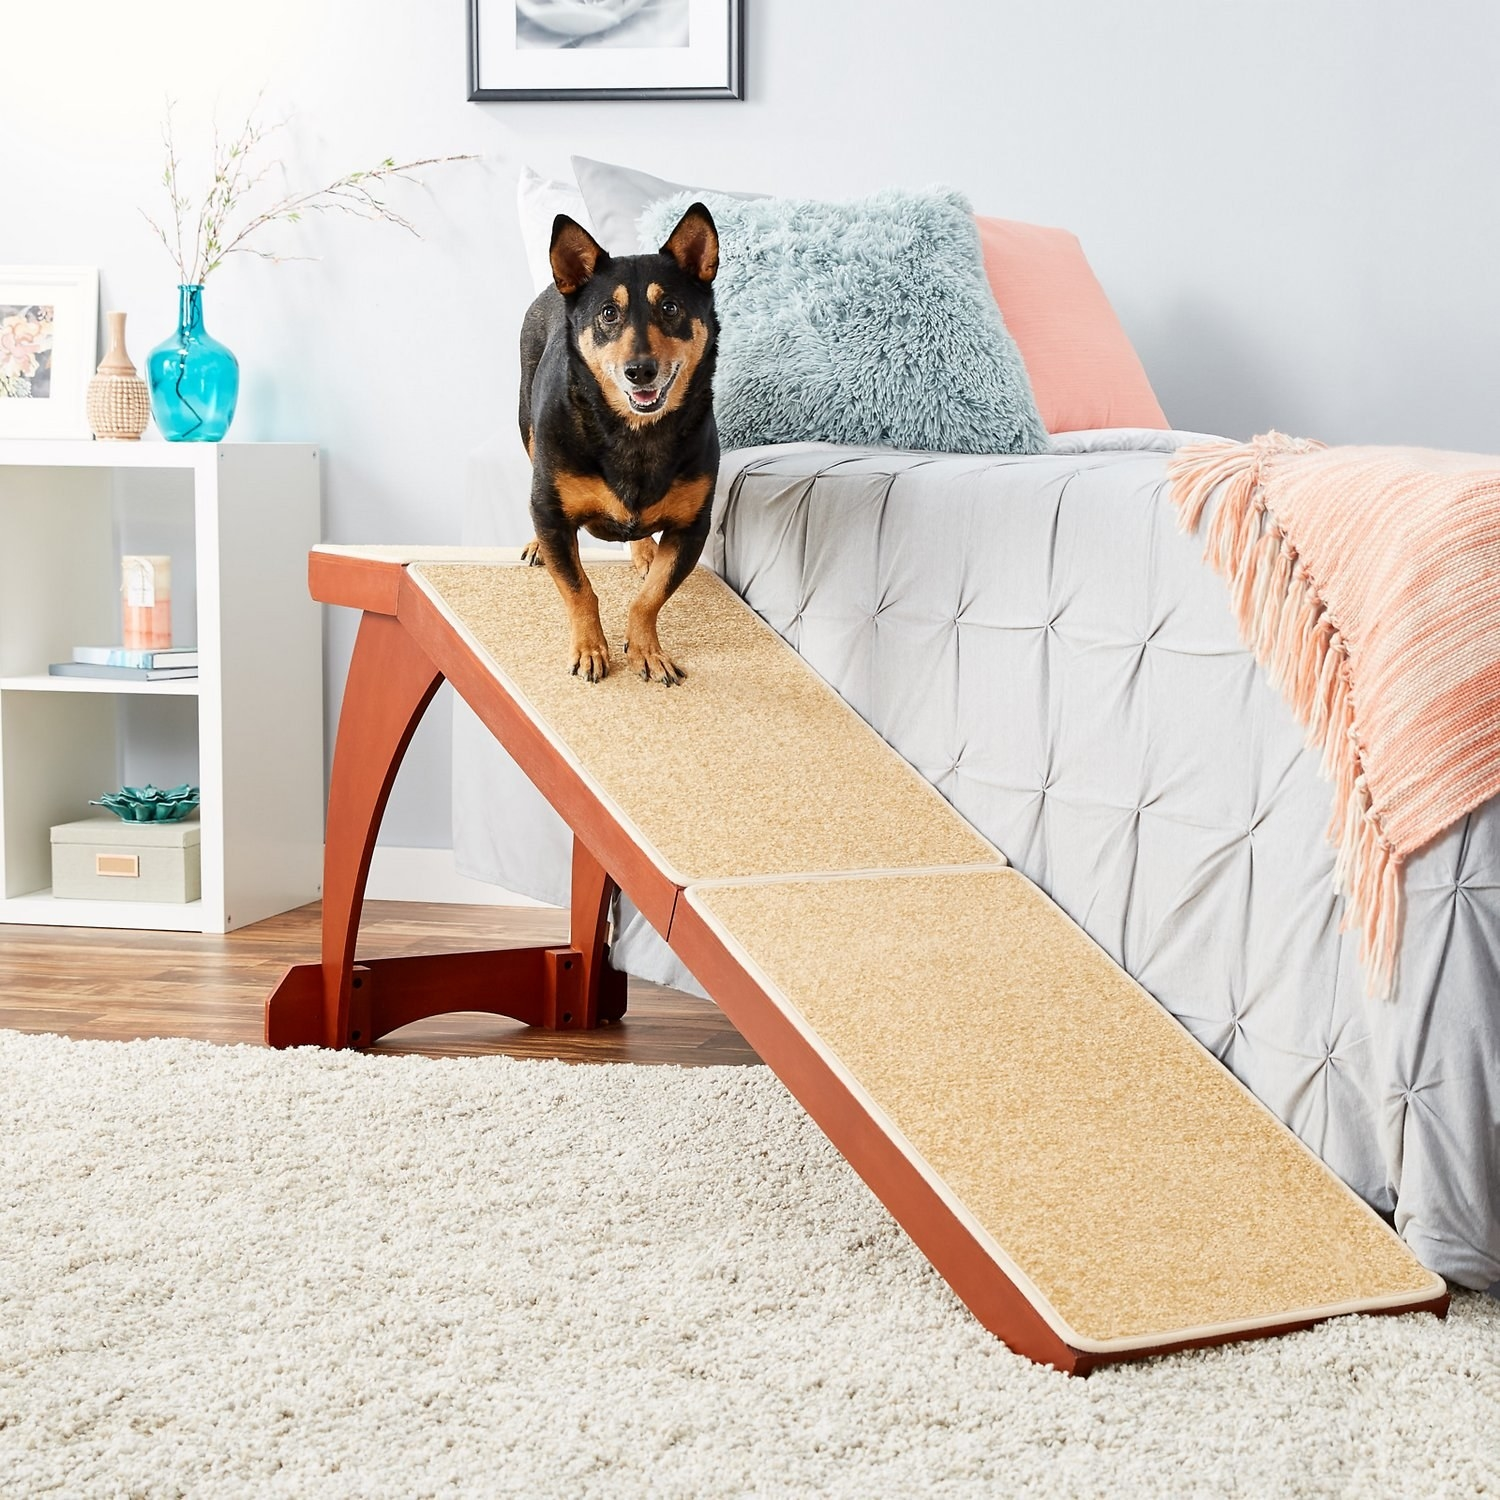 A short-legged dog on top of a carpeted, wood ramp that is placed beside a tall bed